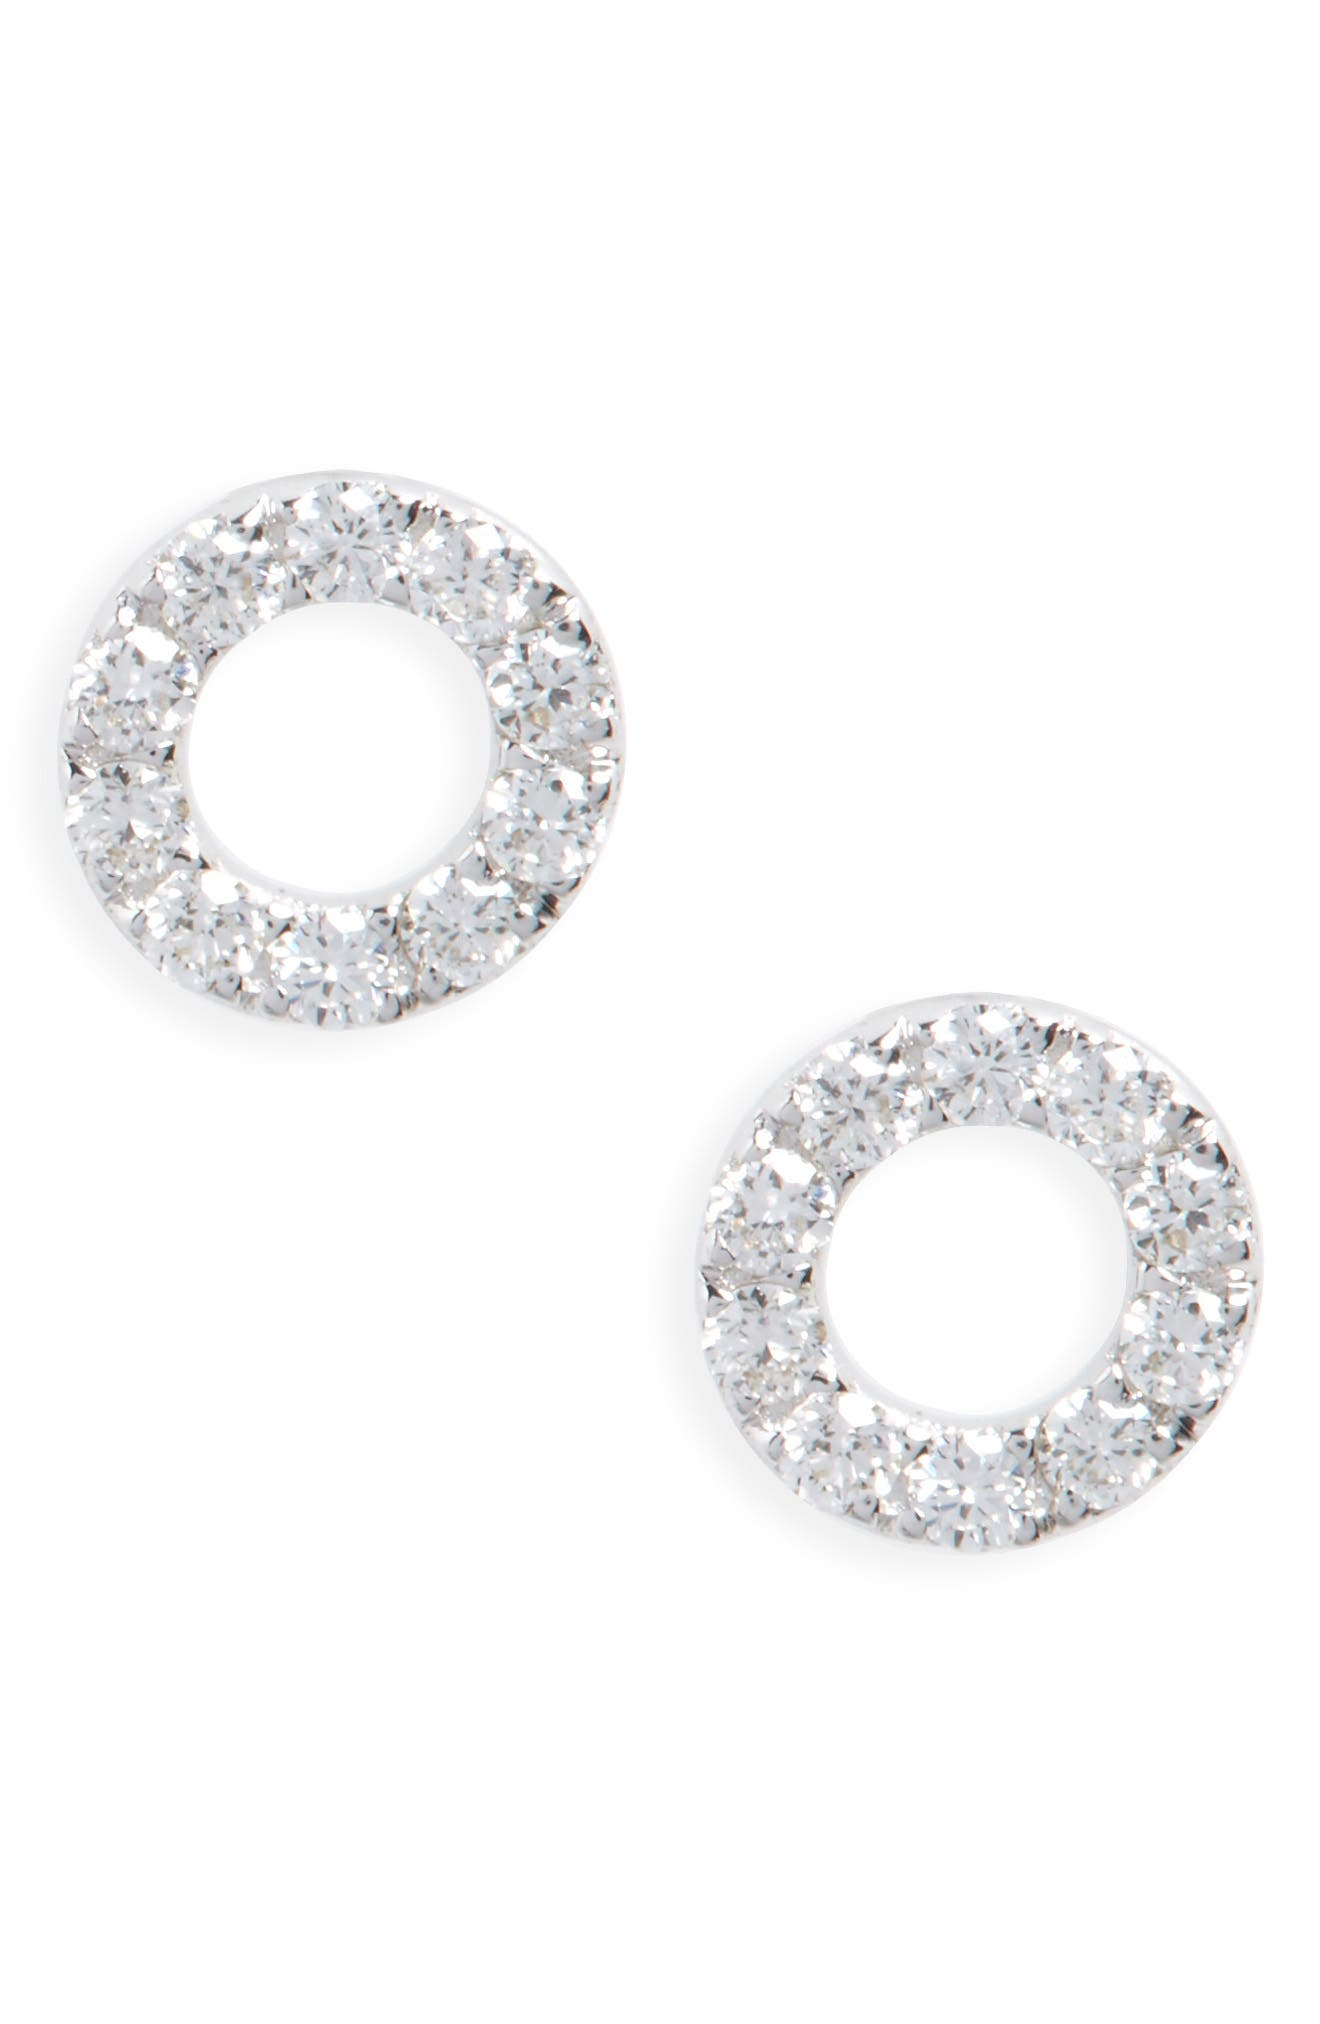 Bony Levy Simple Obsessions Geo Circle Diamond Stud Earrings (Nordstrom Exclusive)